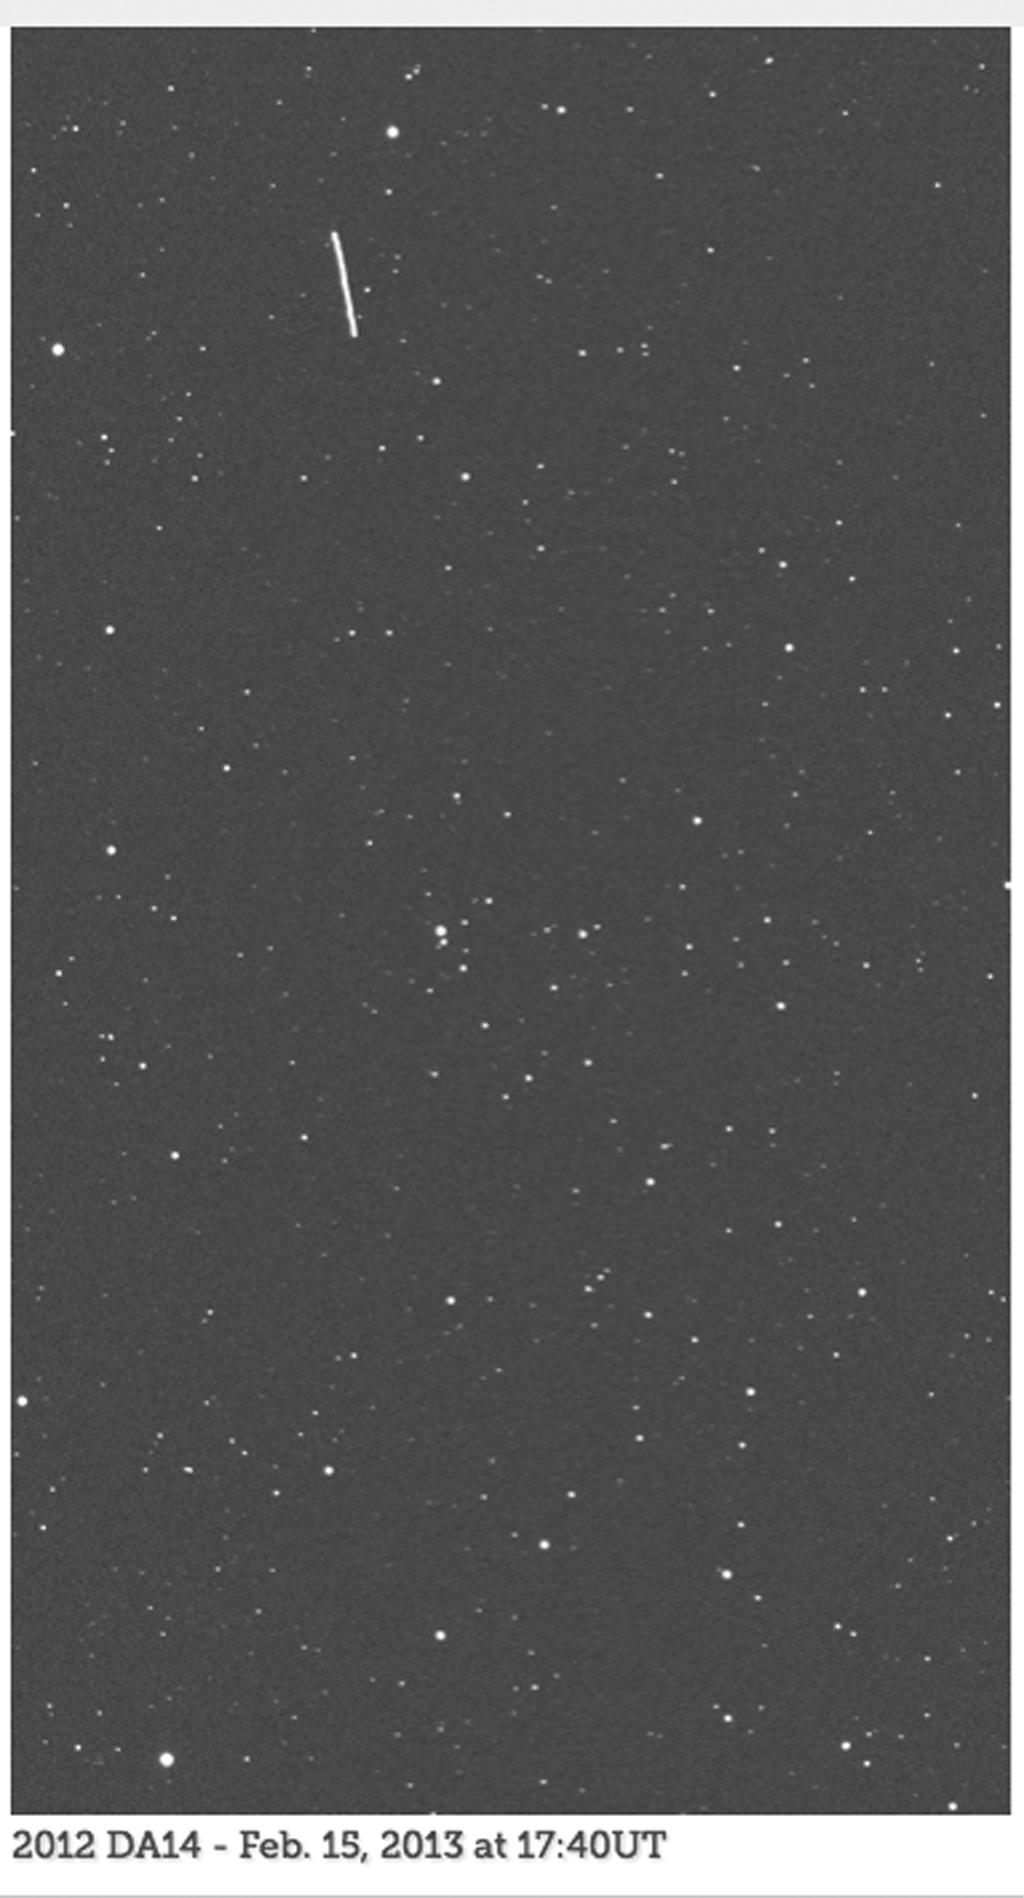 An animated set of images, from the telescope known as the iTelescope.net Siding Spring Observatory, shows asteroid 2012 DA14 as the streak moving from top to bottom in the field of view. The animation is available in the Planetary Photojournal.